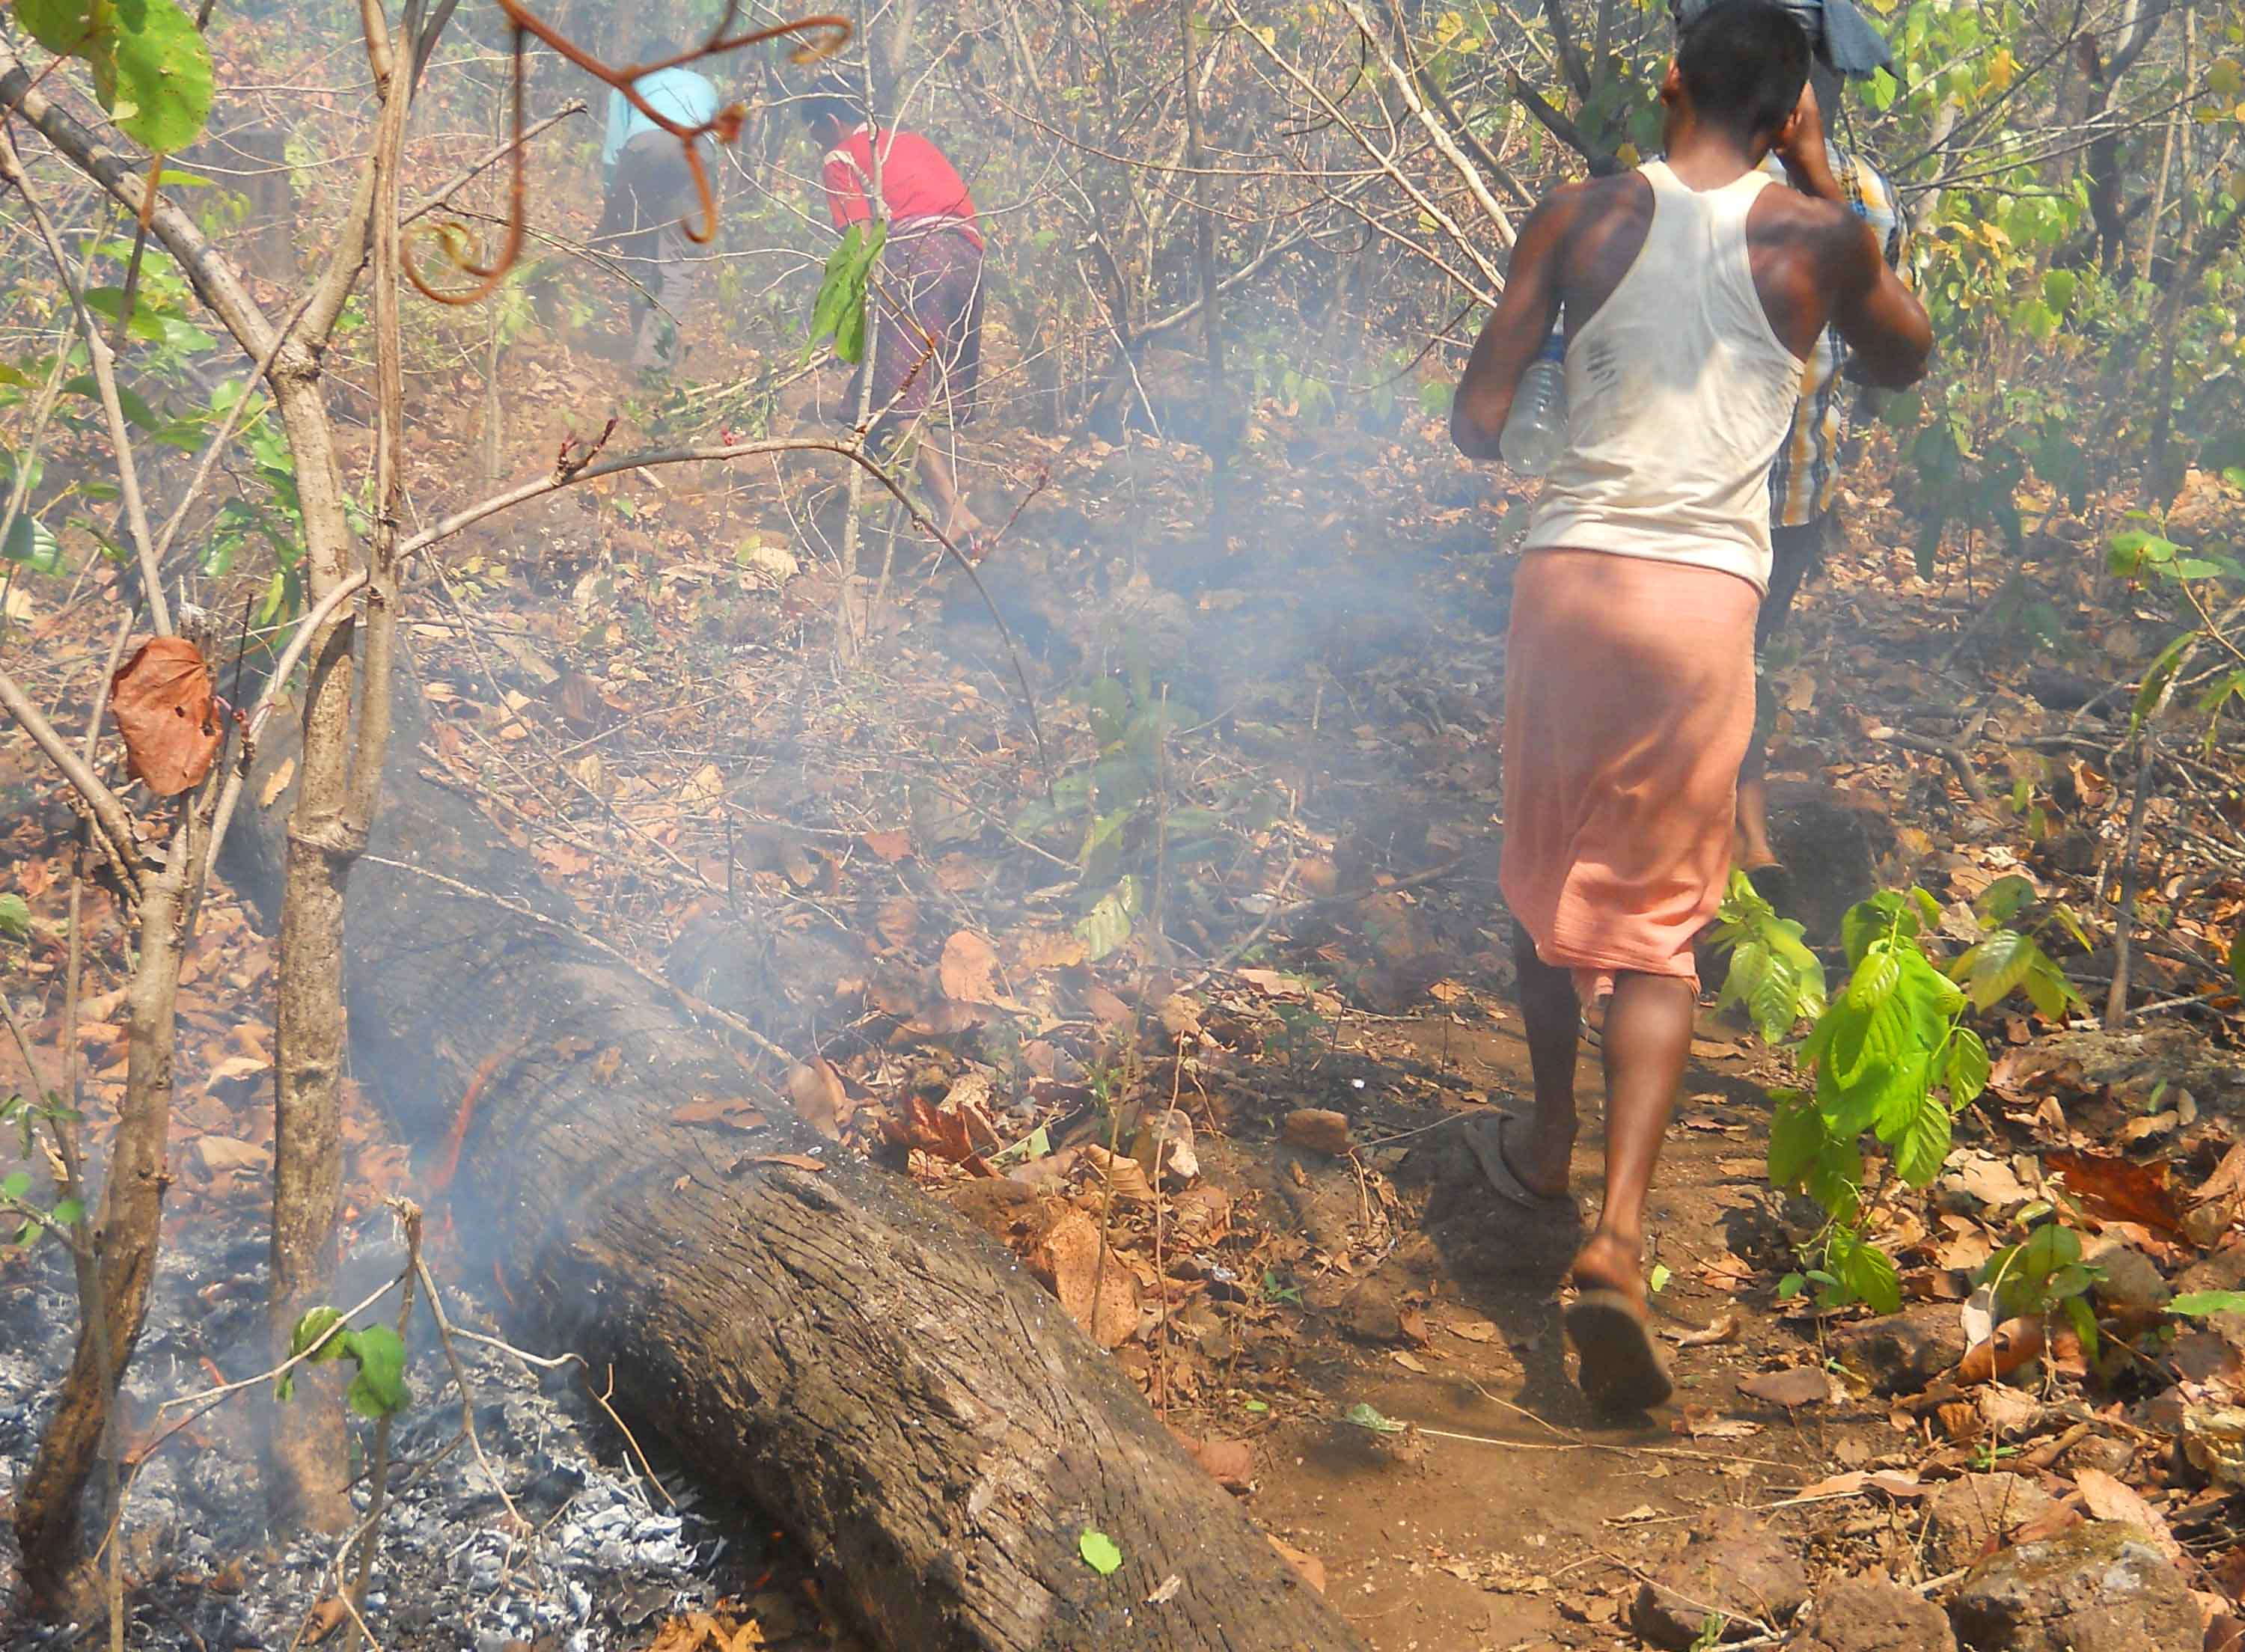 Community members extinguishing fire in jungle (2)